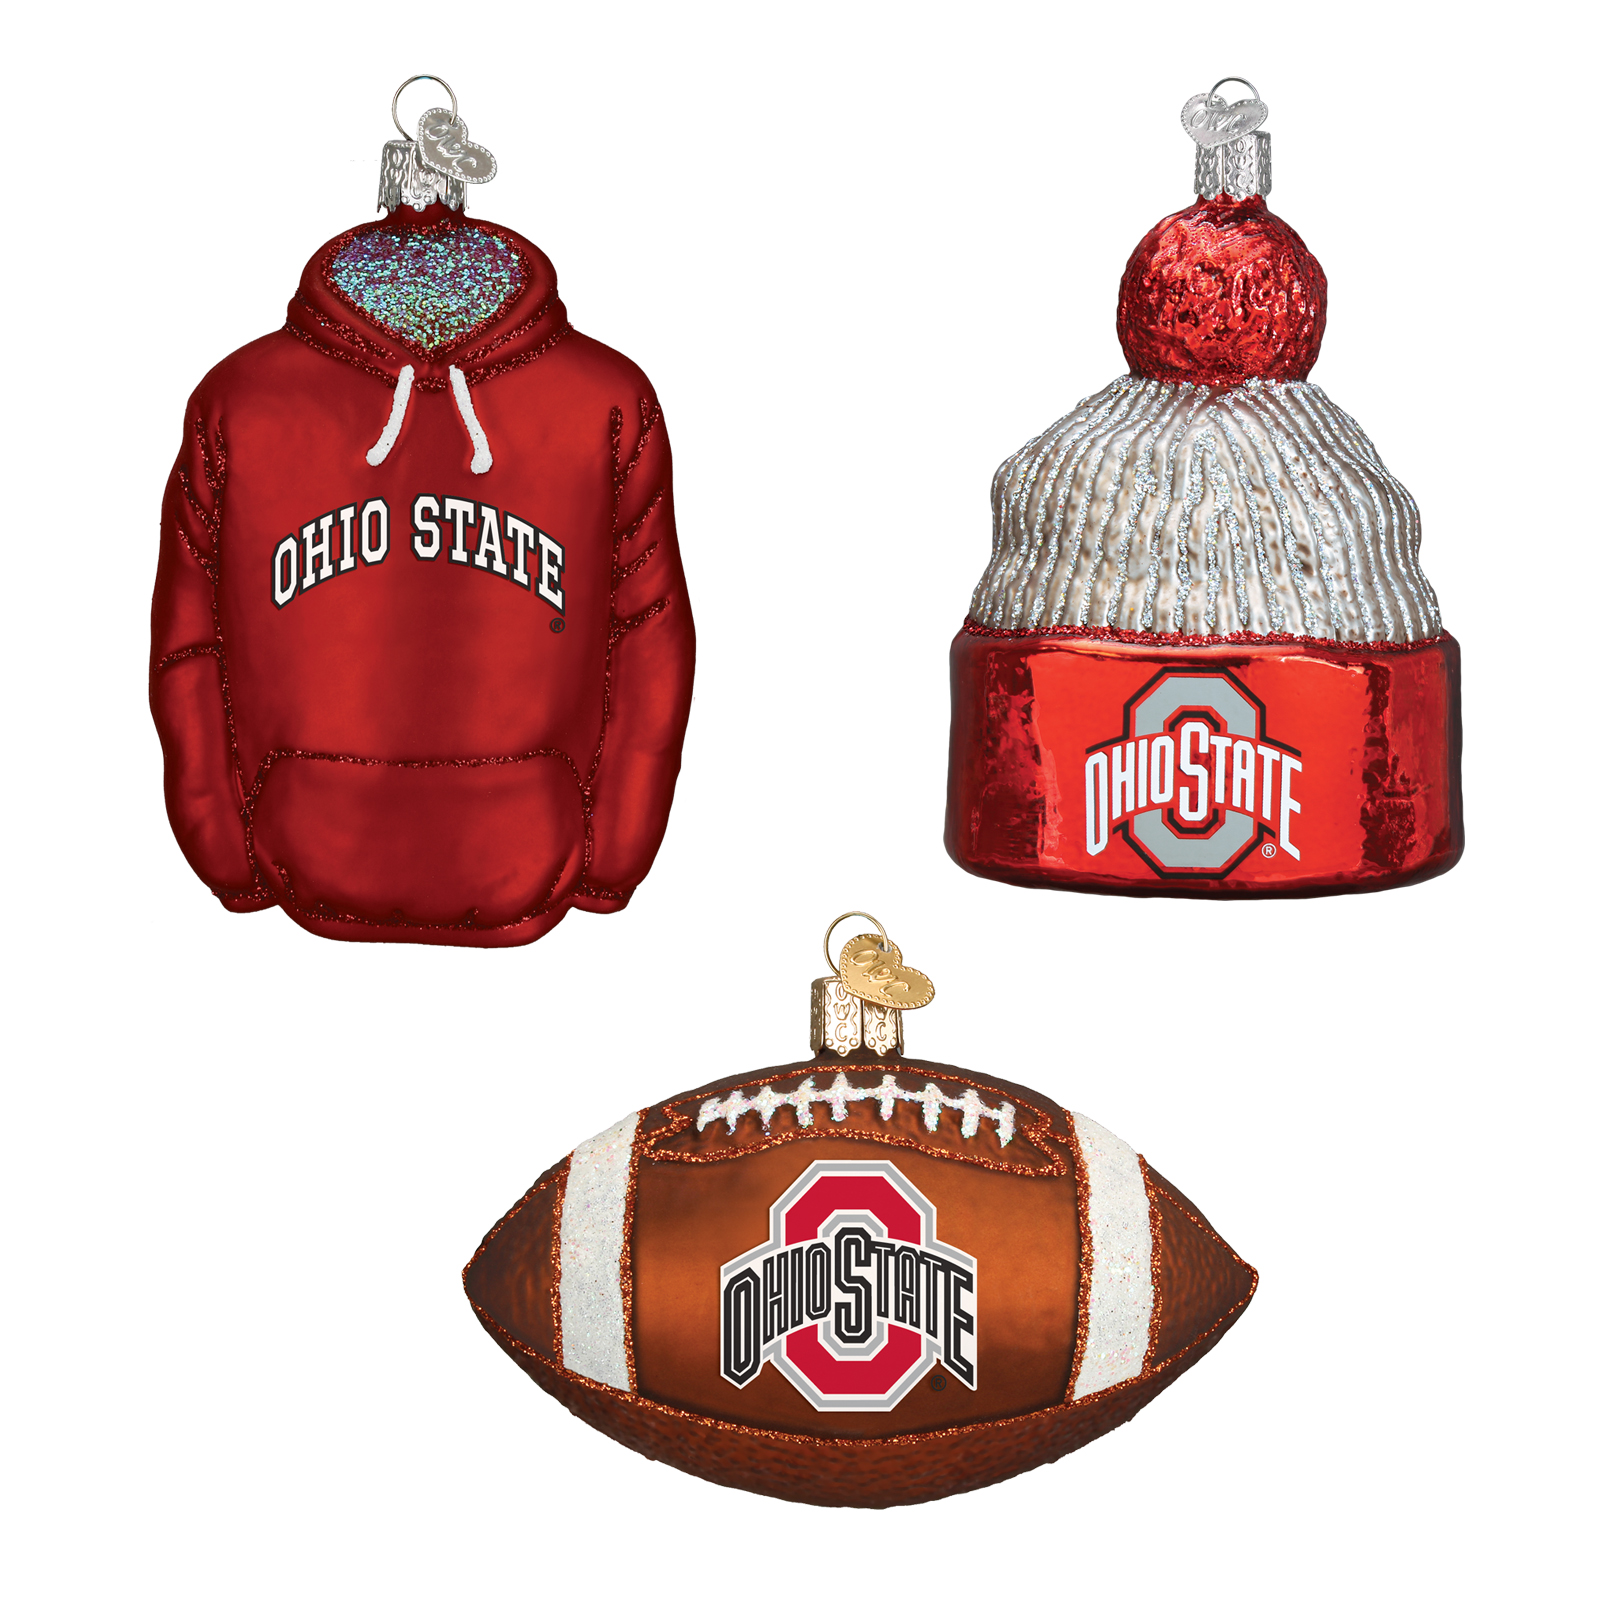 Ohio State Football Christmas Ornaments (3) - PartyBell.com